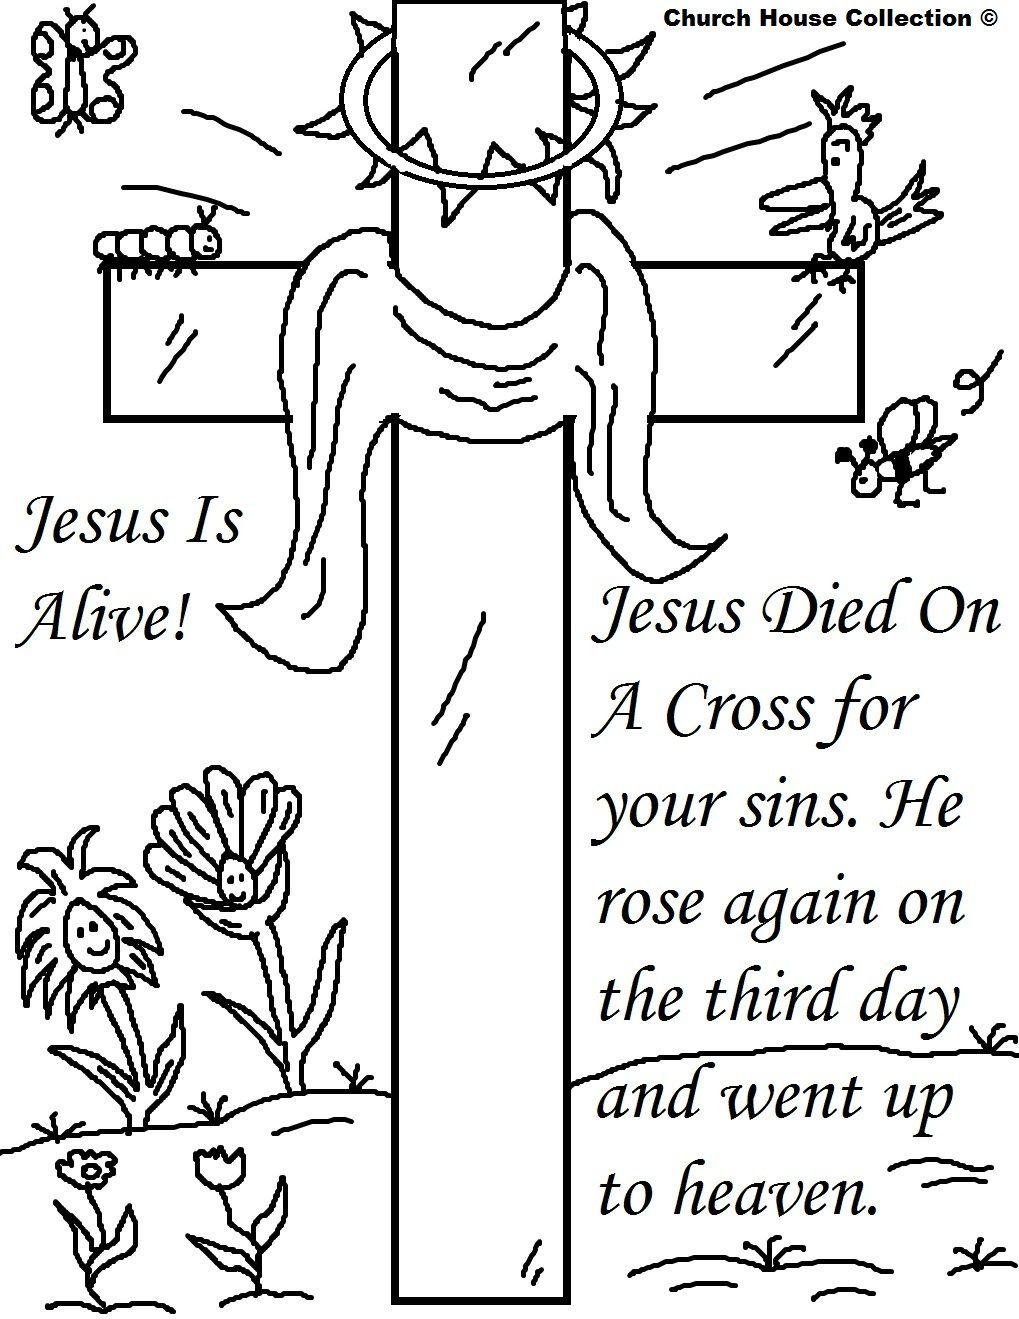 25 Religious Easter Coloring Pages | Sunday School! | Pinterest ...